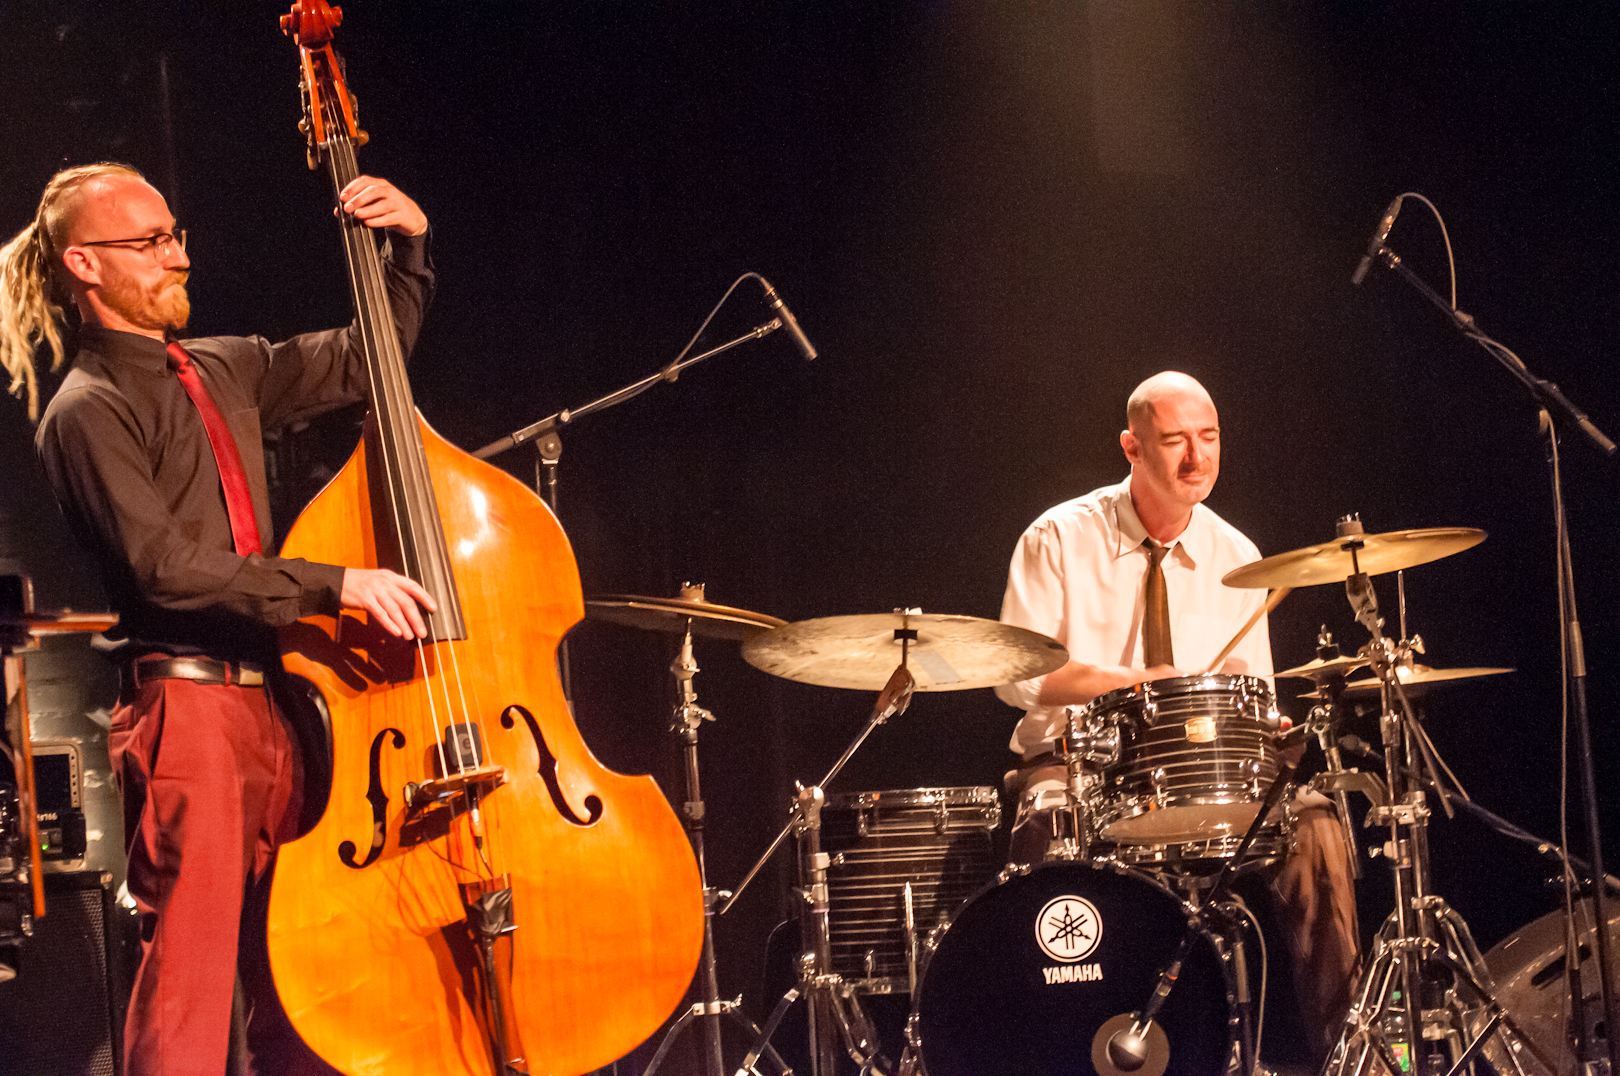 Rex Horan and Evan Jenkinswith the Neil Cowley Trio at the Montreal International Jazz Festival 2012